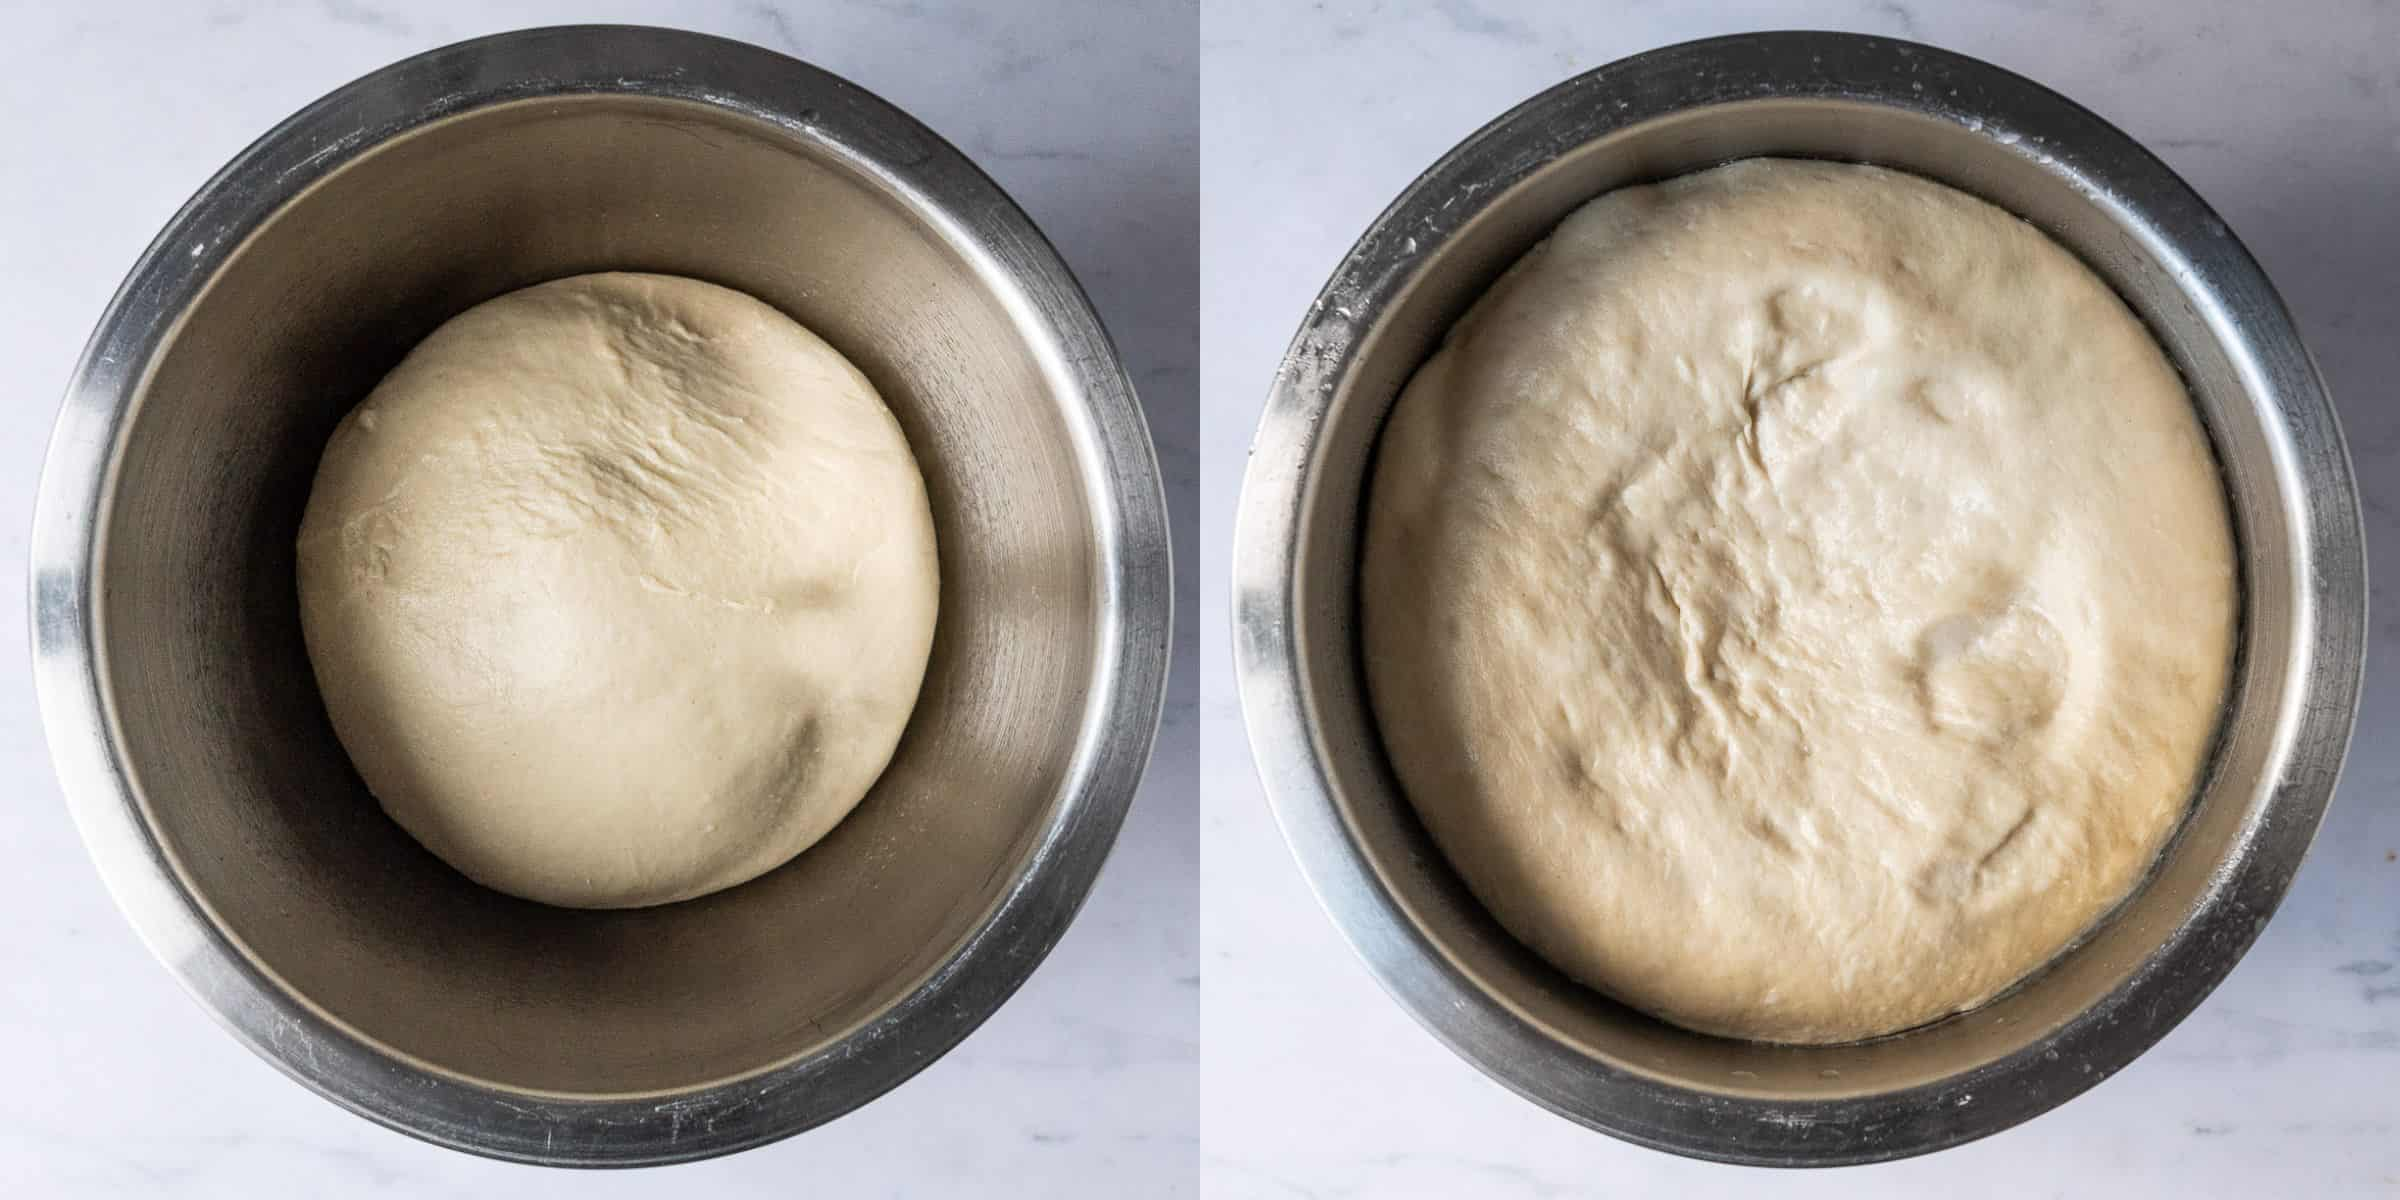 A two image collage of the dough before and after it's first rise.